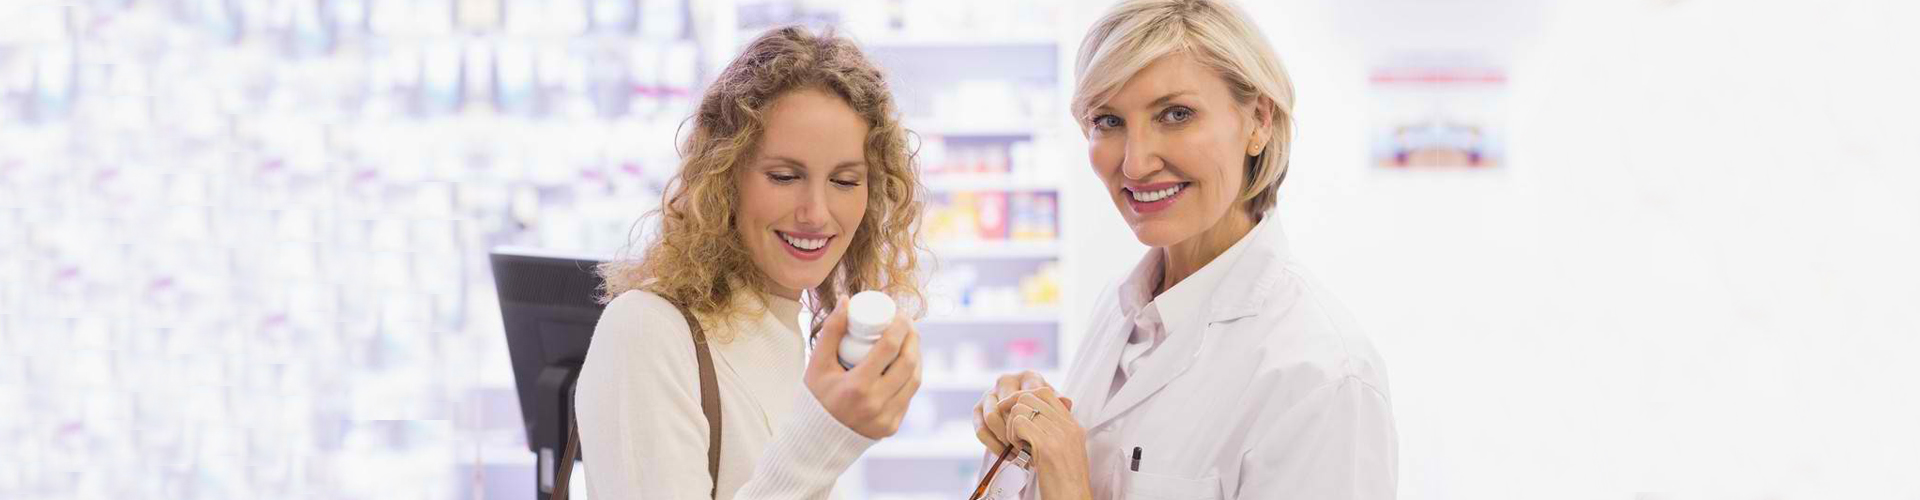 a pharmacist givivng medicine to her customer